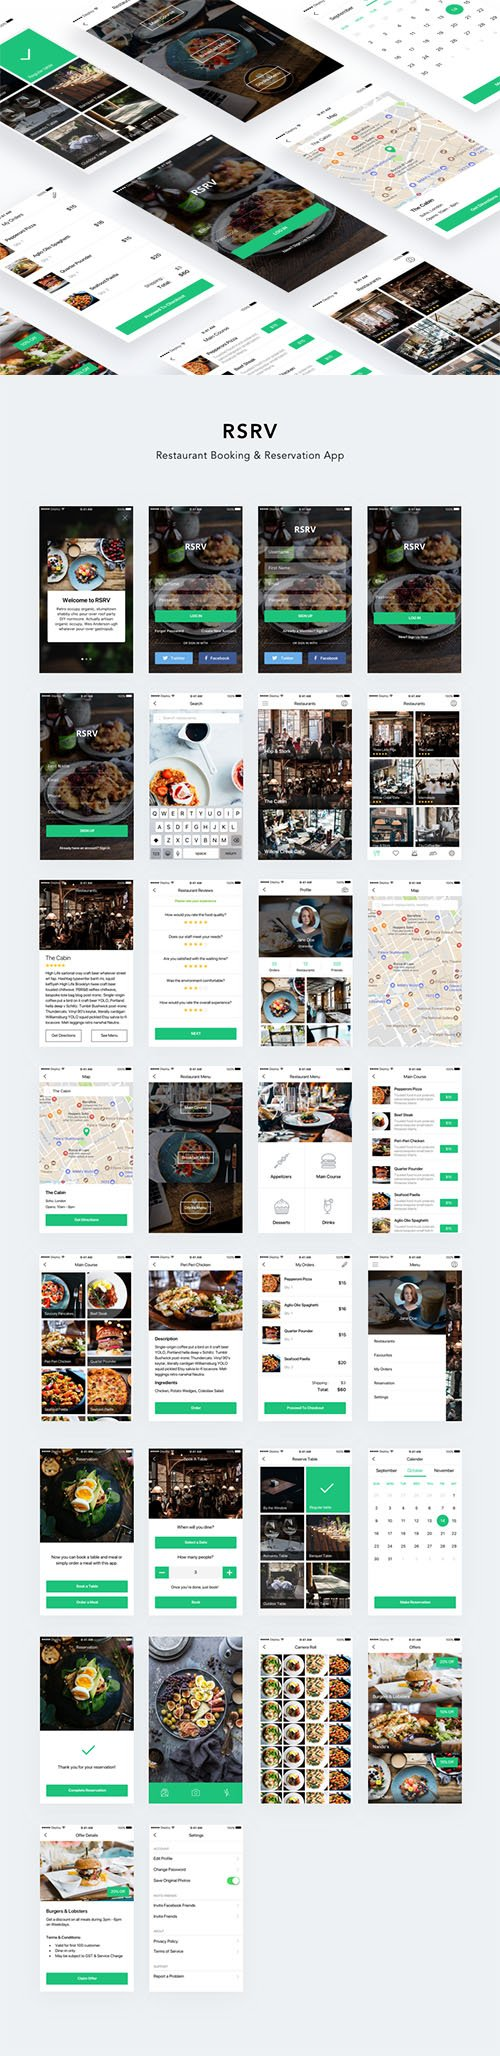 RSRV - Restaurant Booking and Reservation App